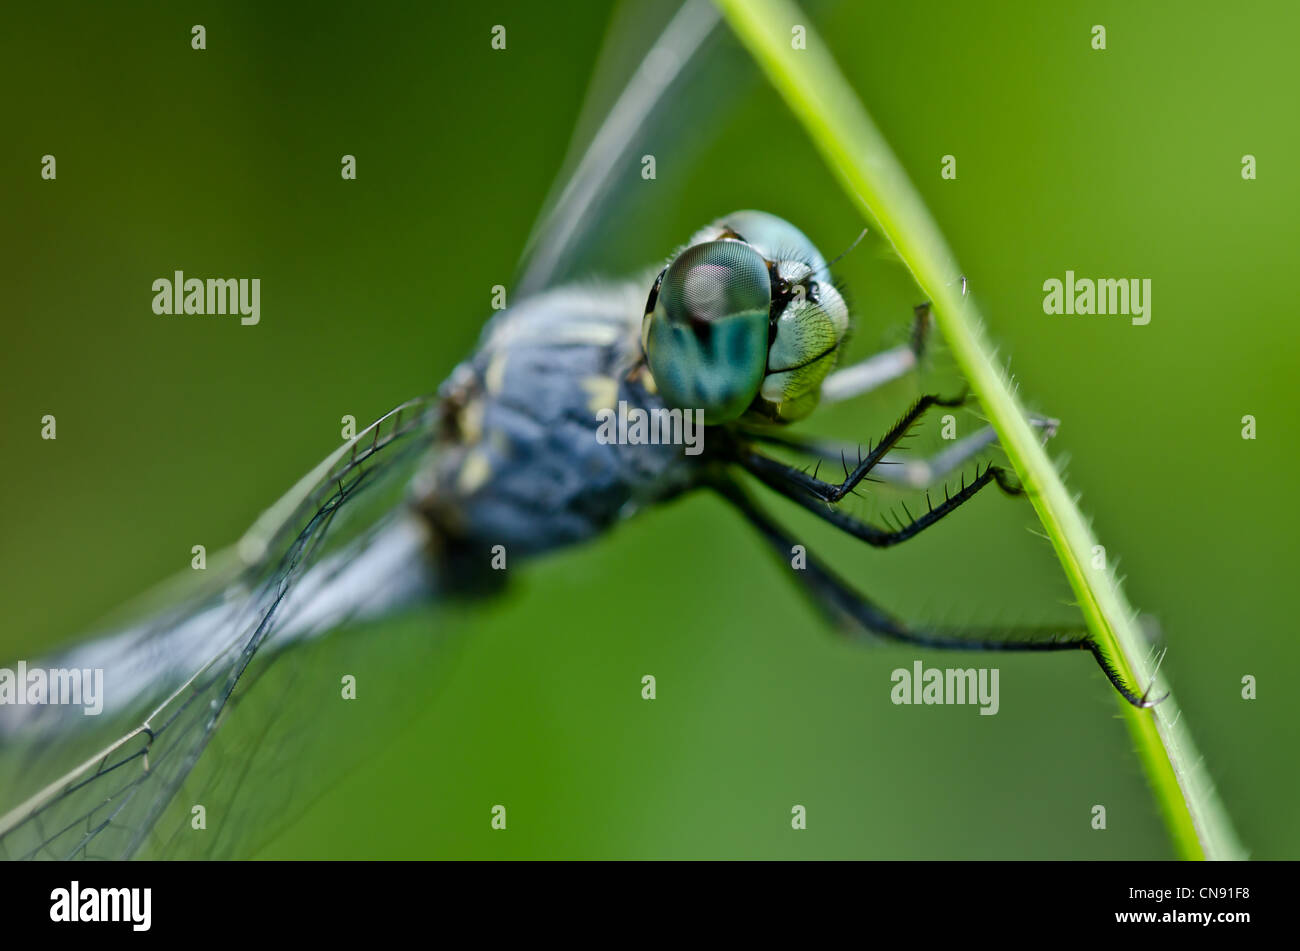 dragonfly in green nature or in the garden - Stock Image